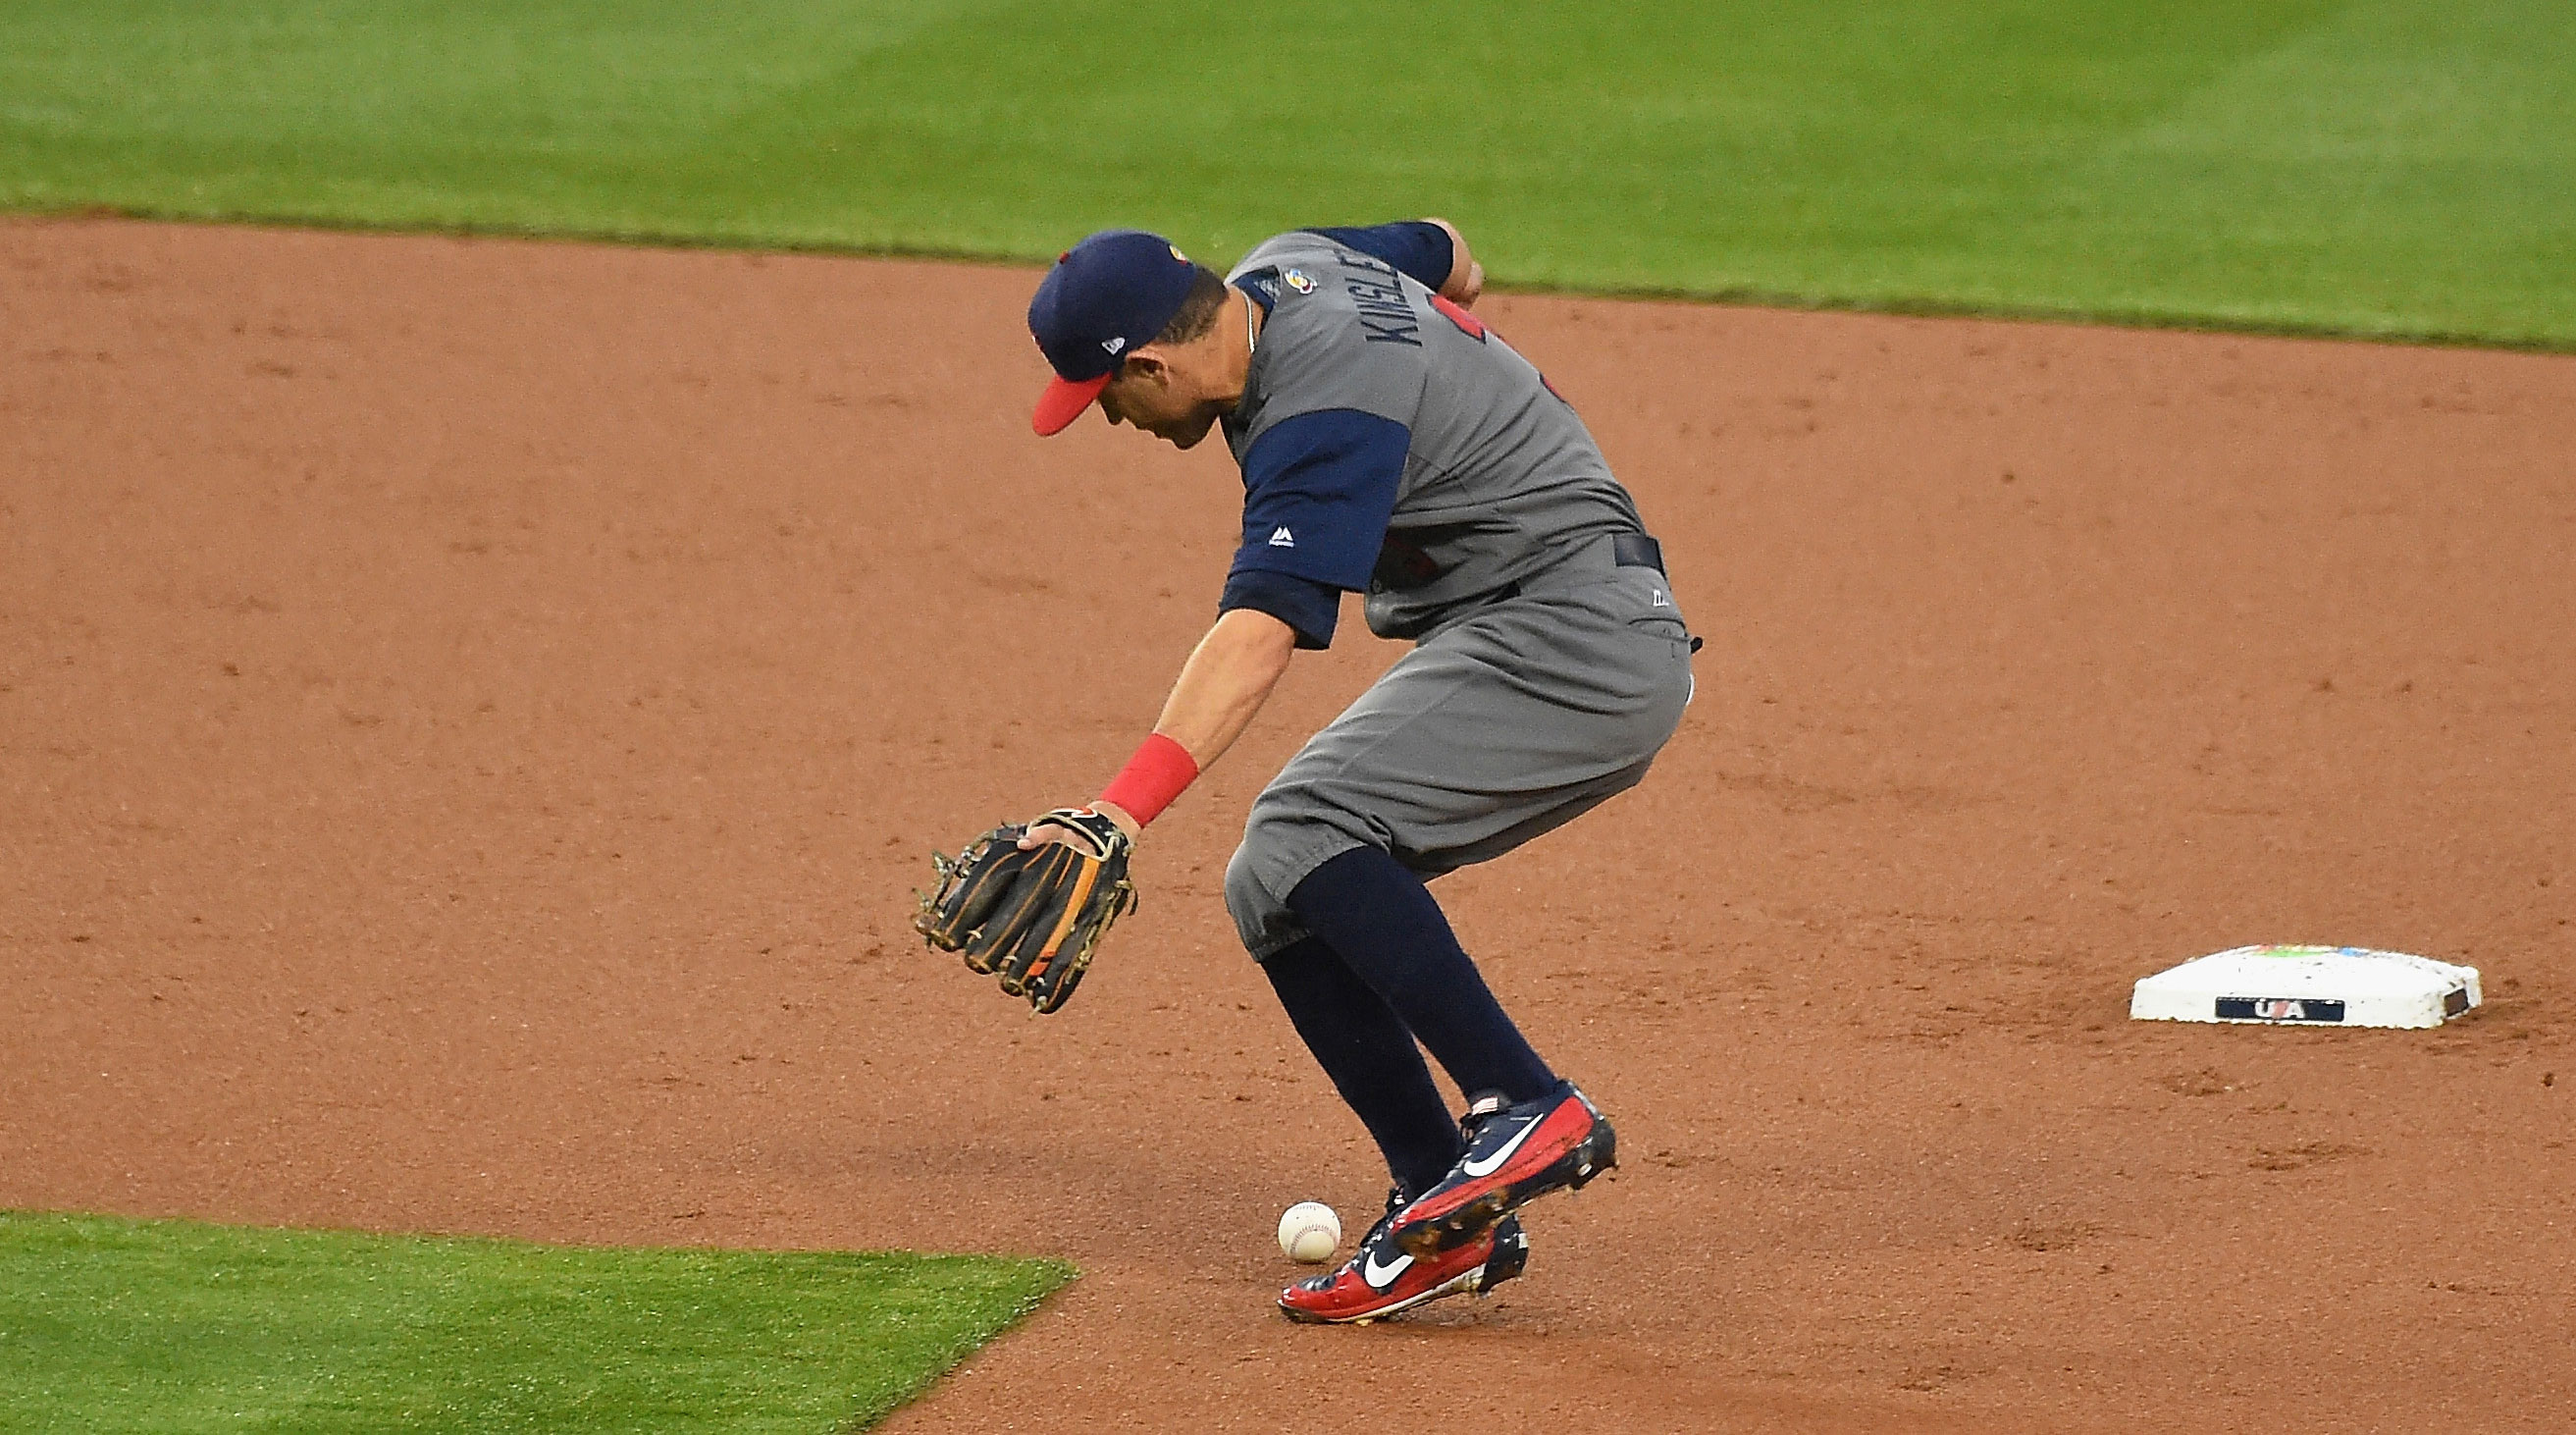 Ian Kinsler says kids should appreciate USA's style of play